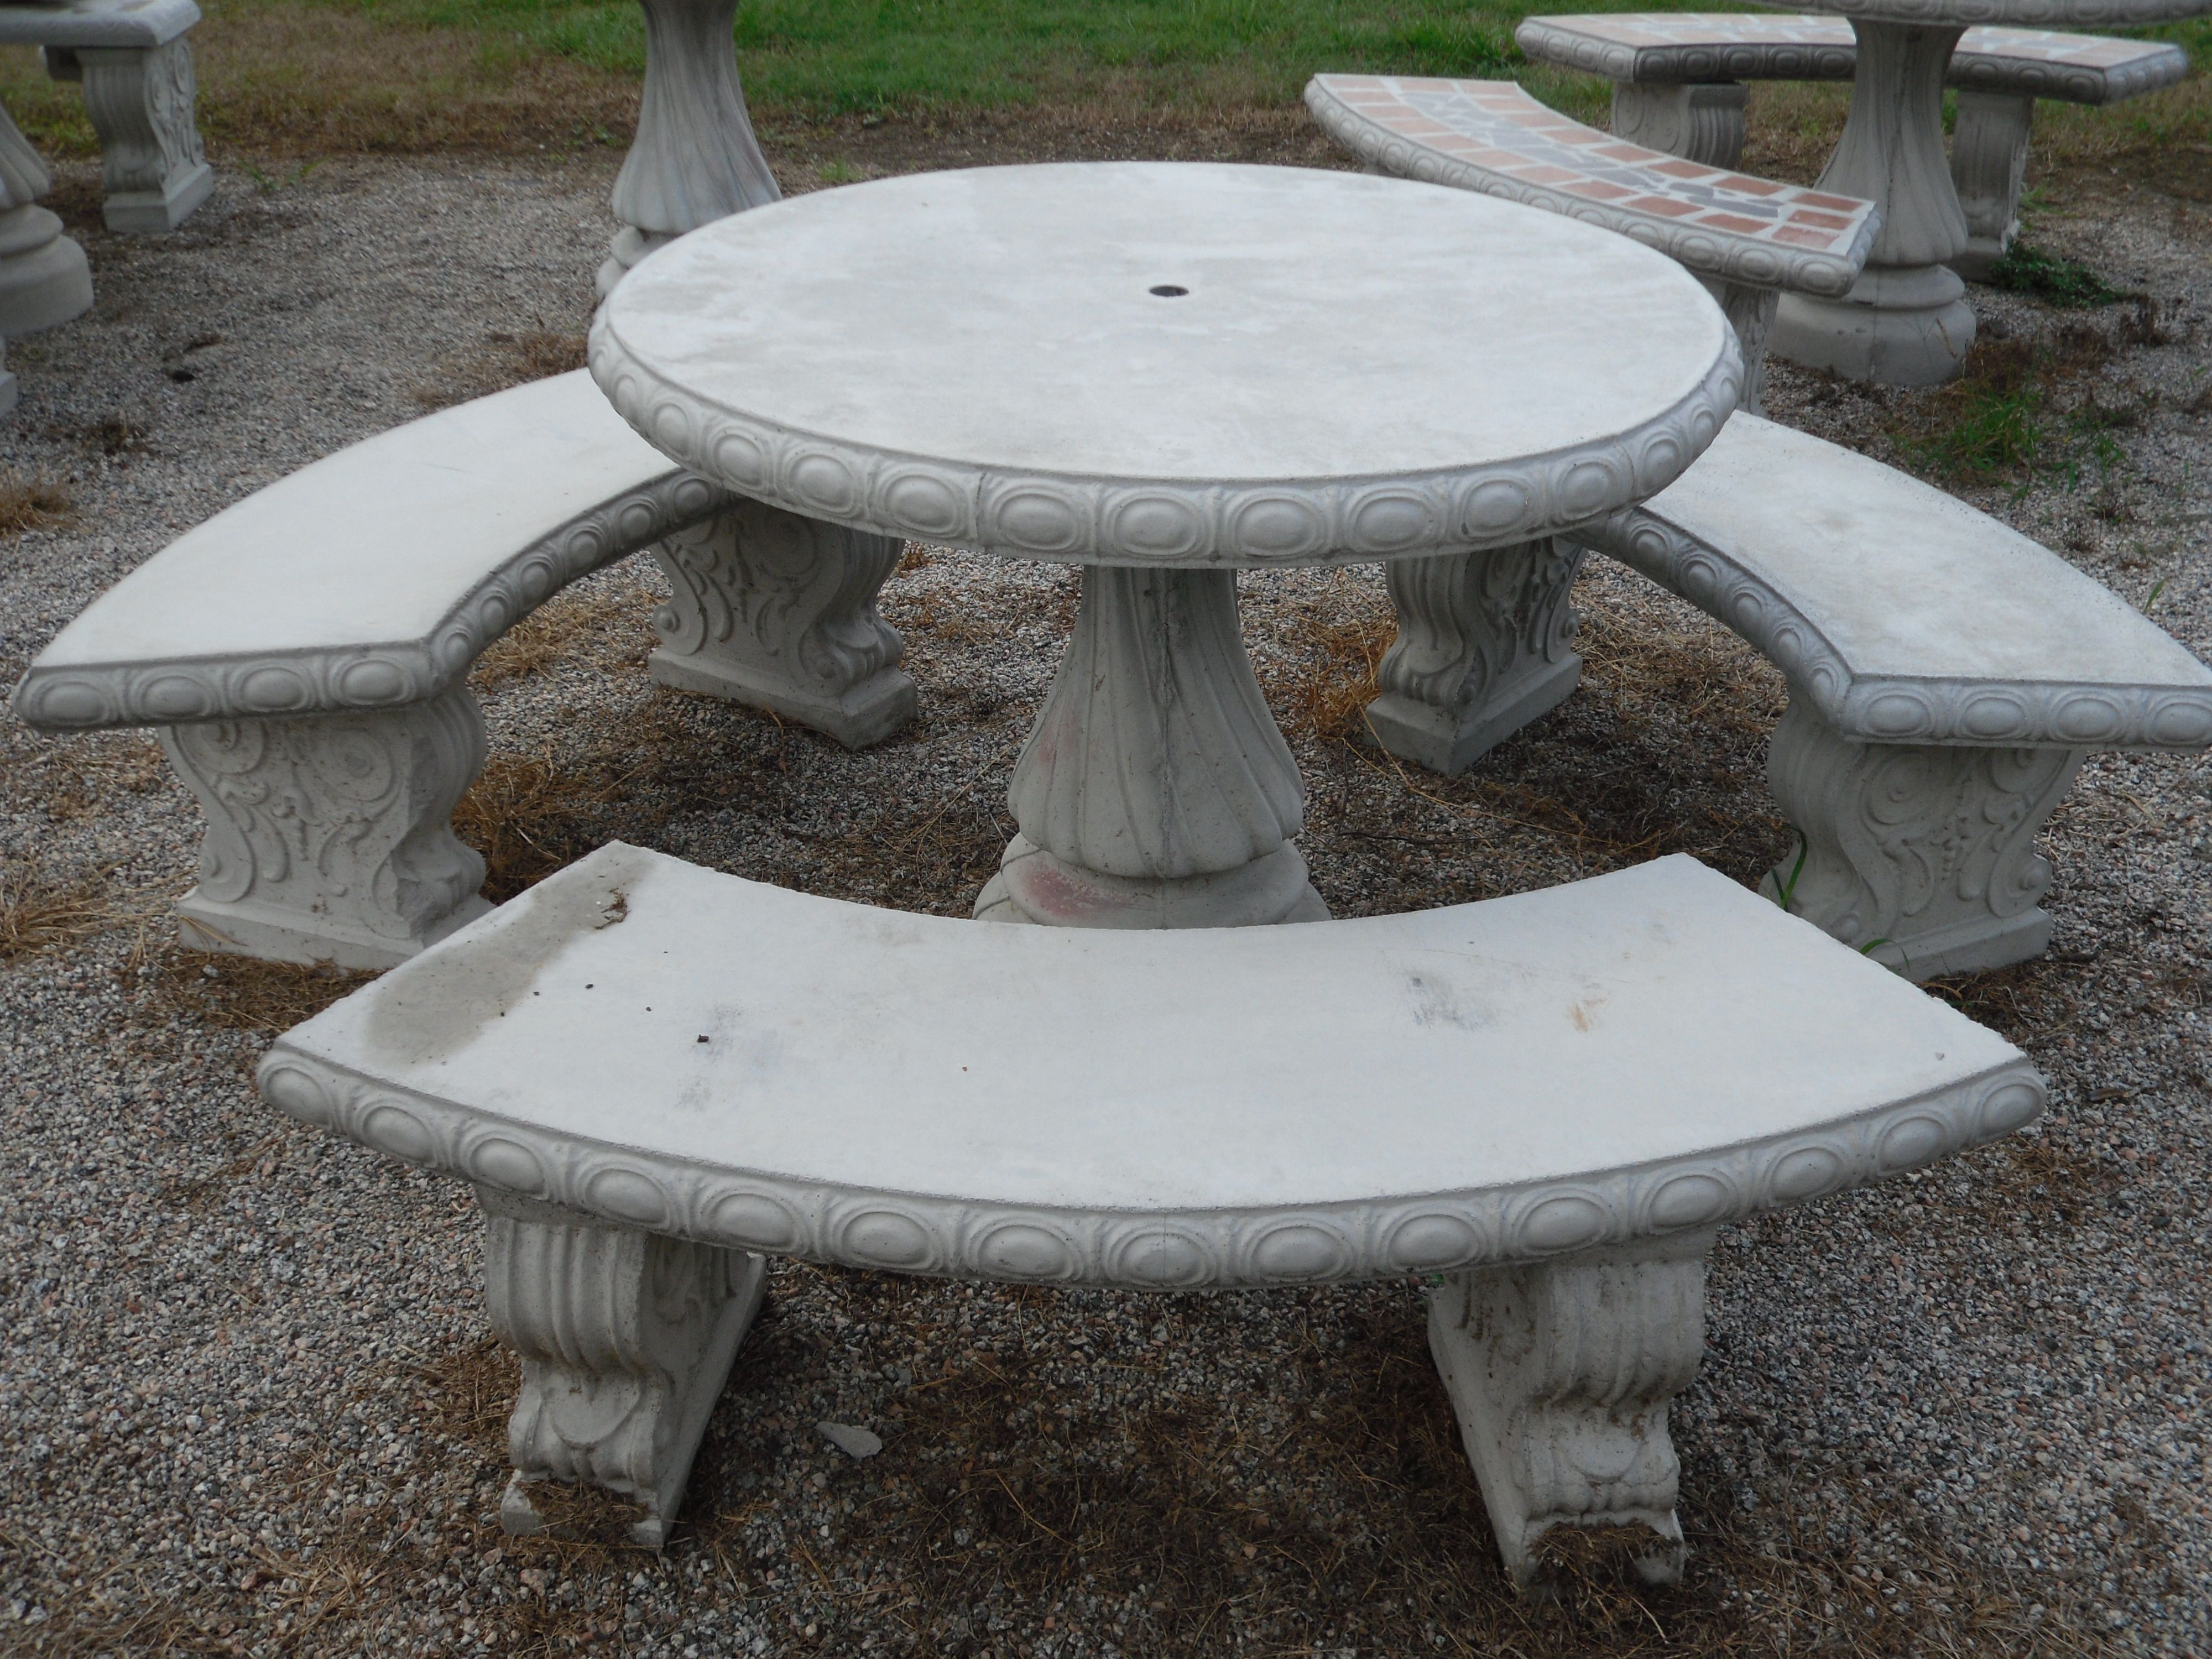 Large Round Stone Garden Table Check More At Http://www.arch20.club/2017/04/18/large-round-stone-gard… | Concrete Table, Concrete Outdoor Table, Outdoor Patio Table